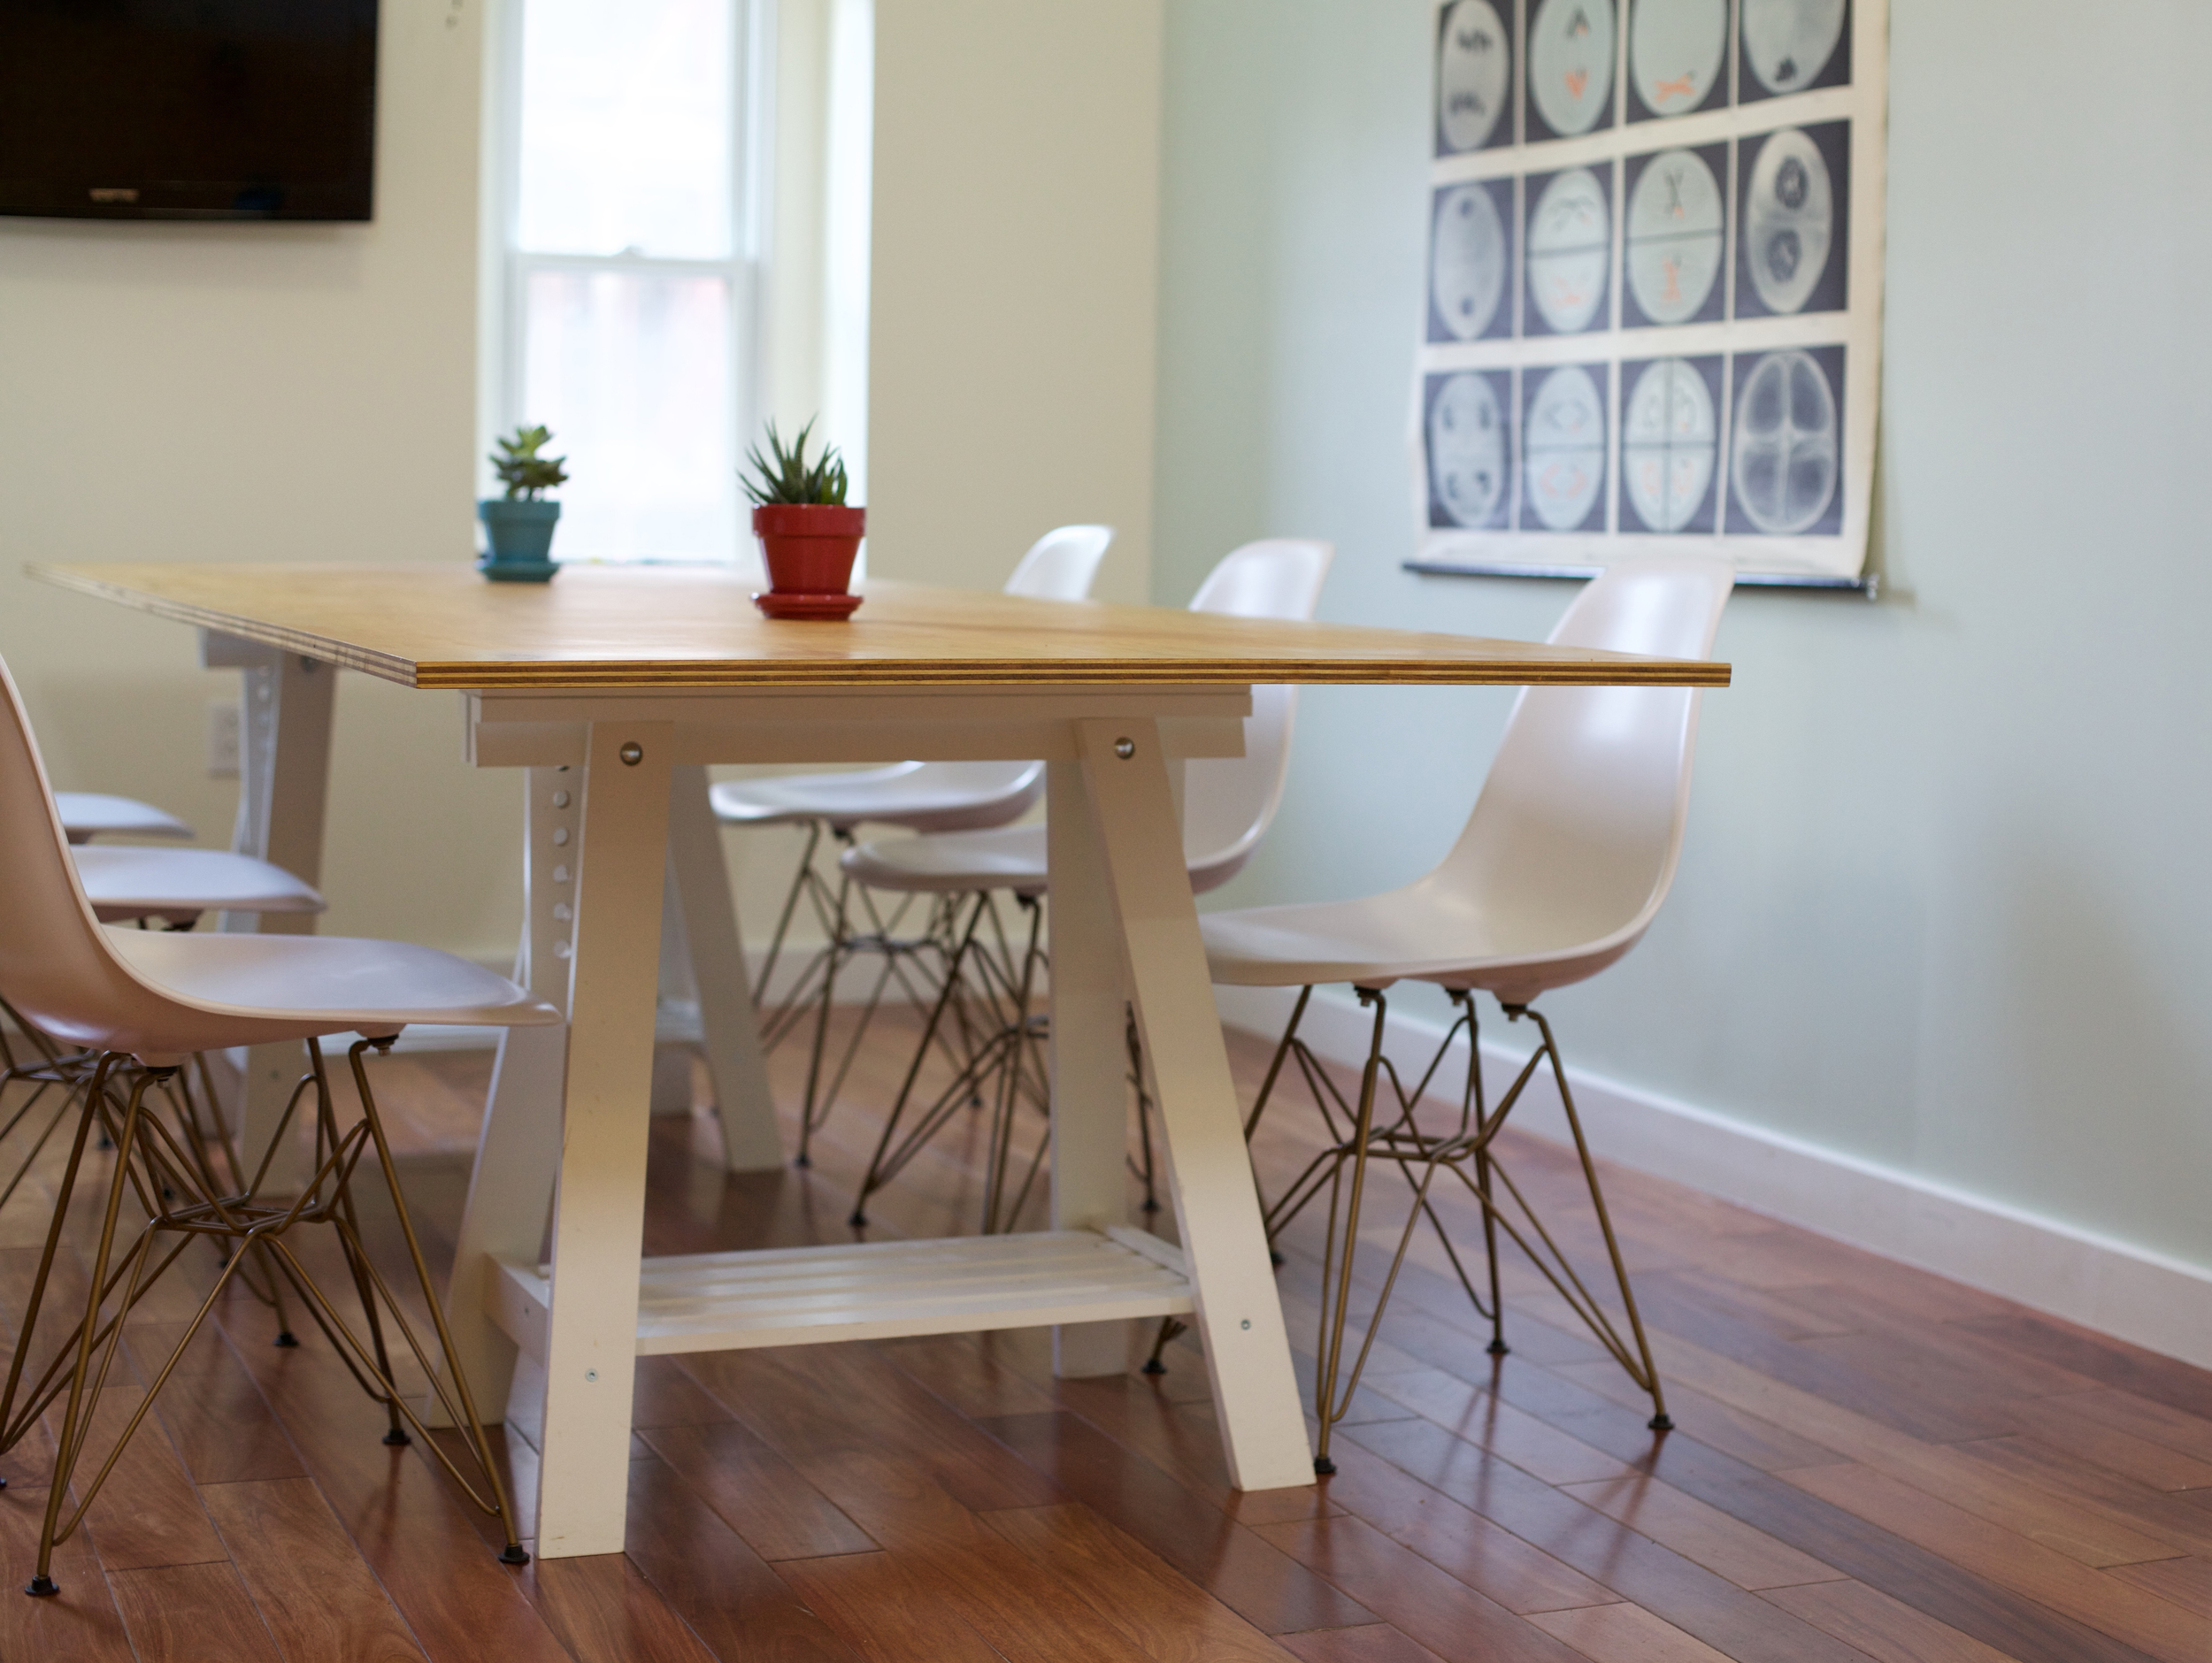 zmaic-one-month-interior-design-conference-room-custom-table.jpg